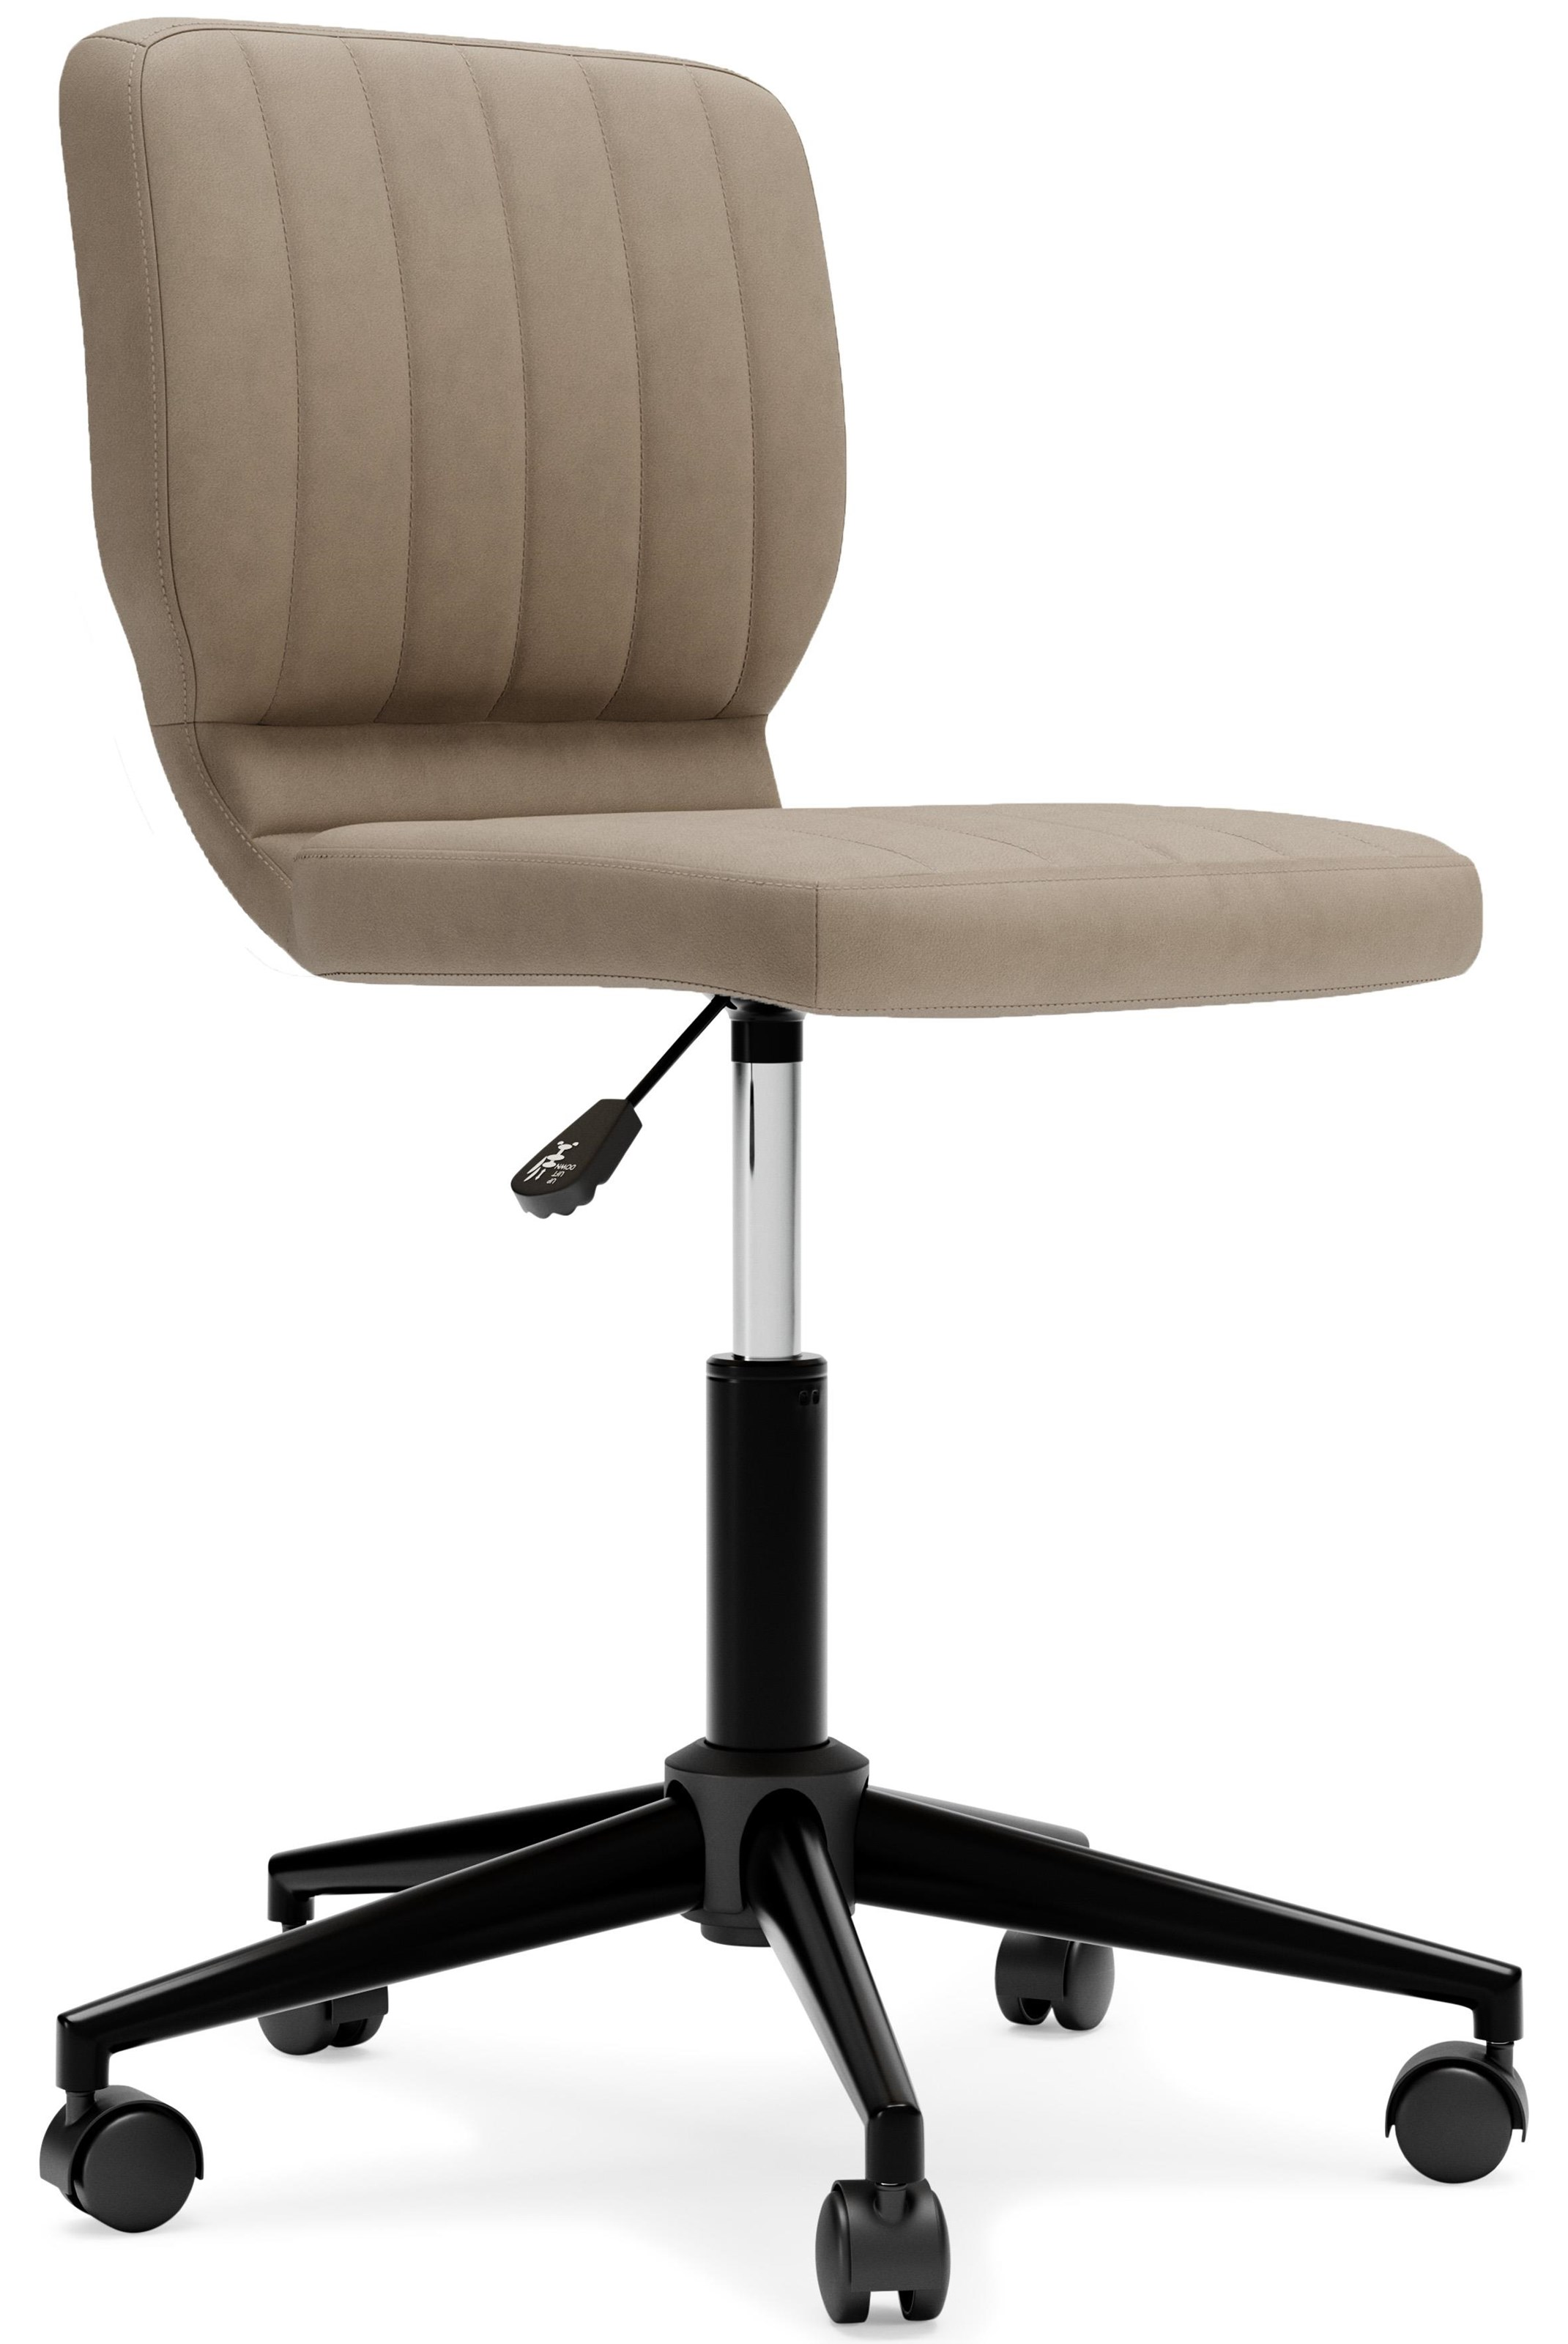 Beauenali Home Office Desk Chair by Signature Design by Ashley at Sam Levitz Furniture